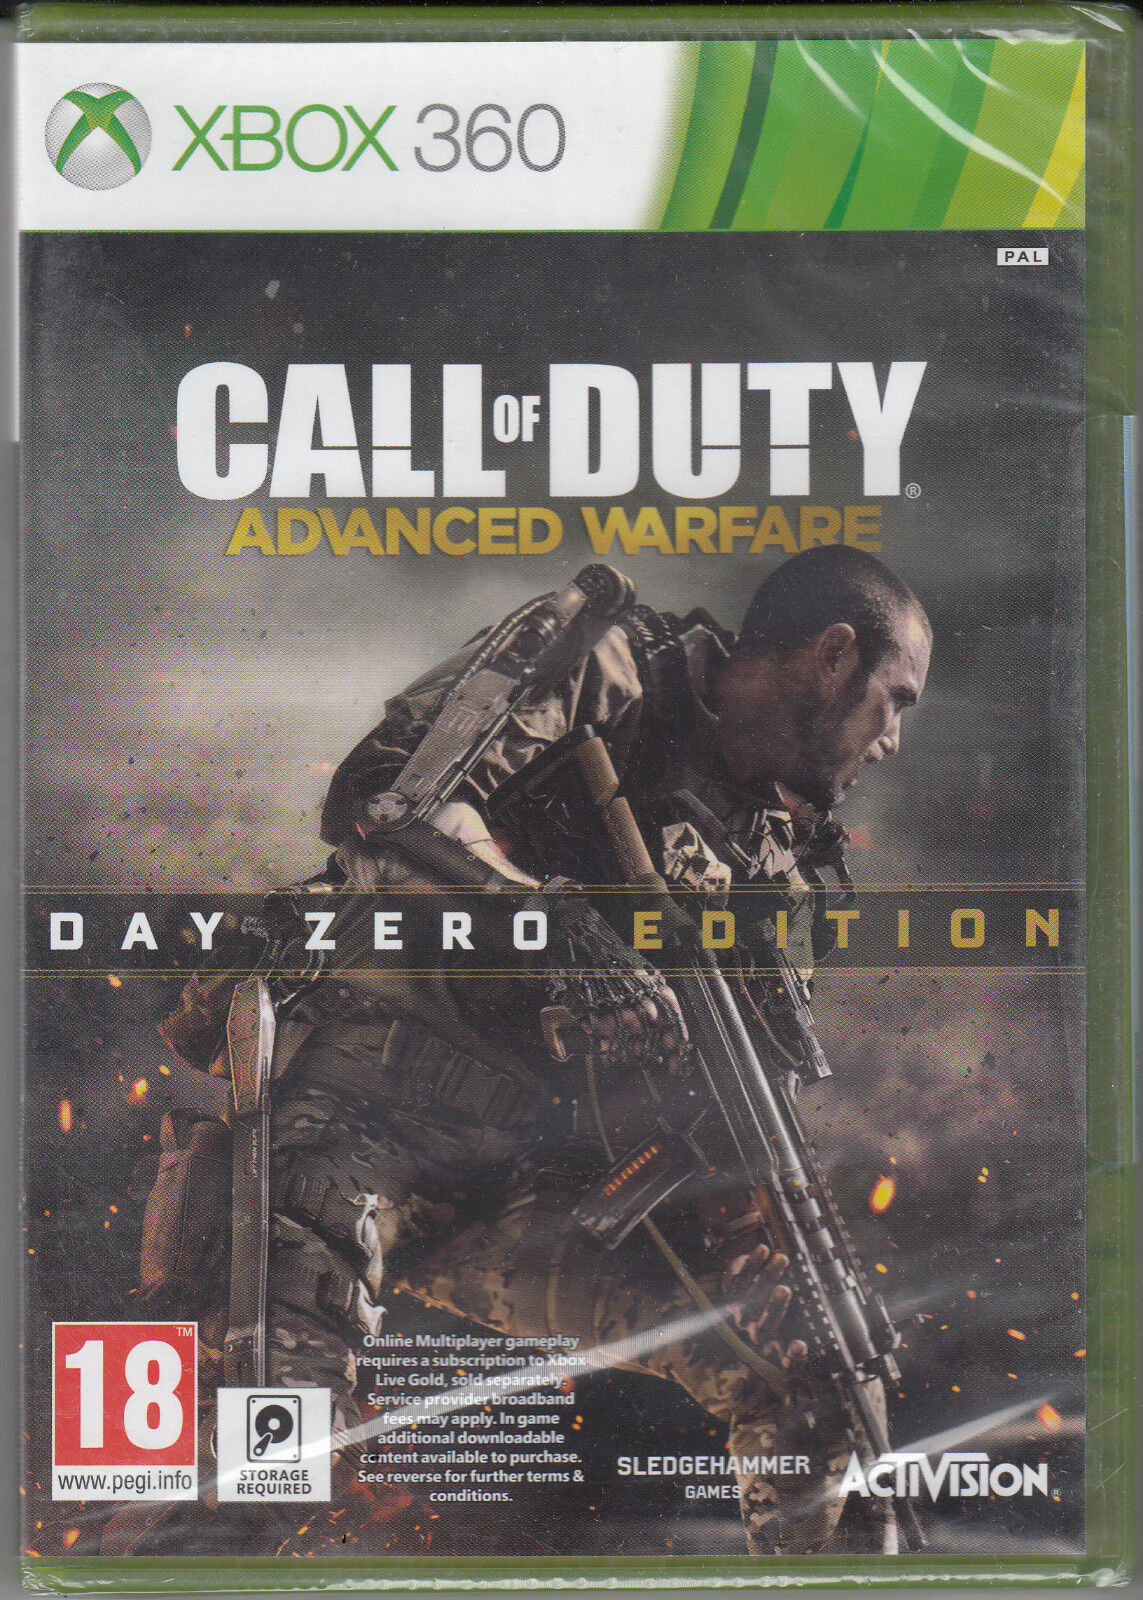 Xbox 360 Games - Call of Duty Advanced Warfare Day Zero Edition Xbox 360 Brand New Factory Sealed